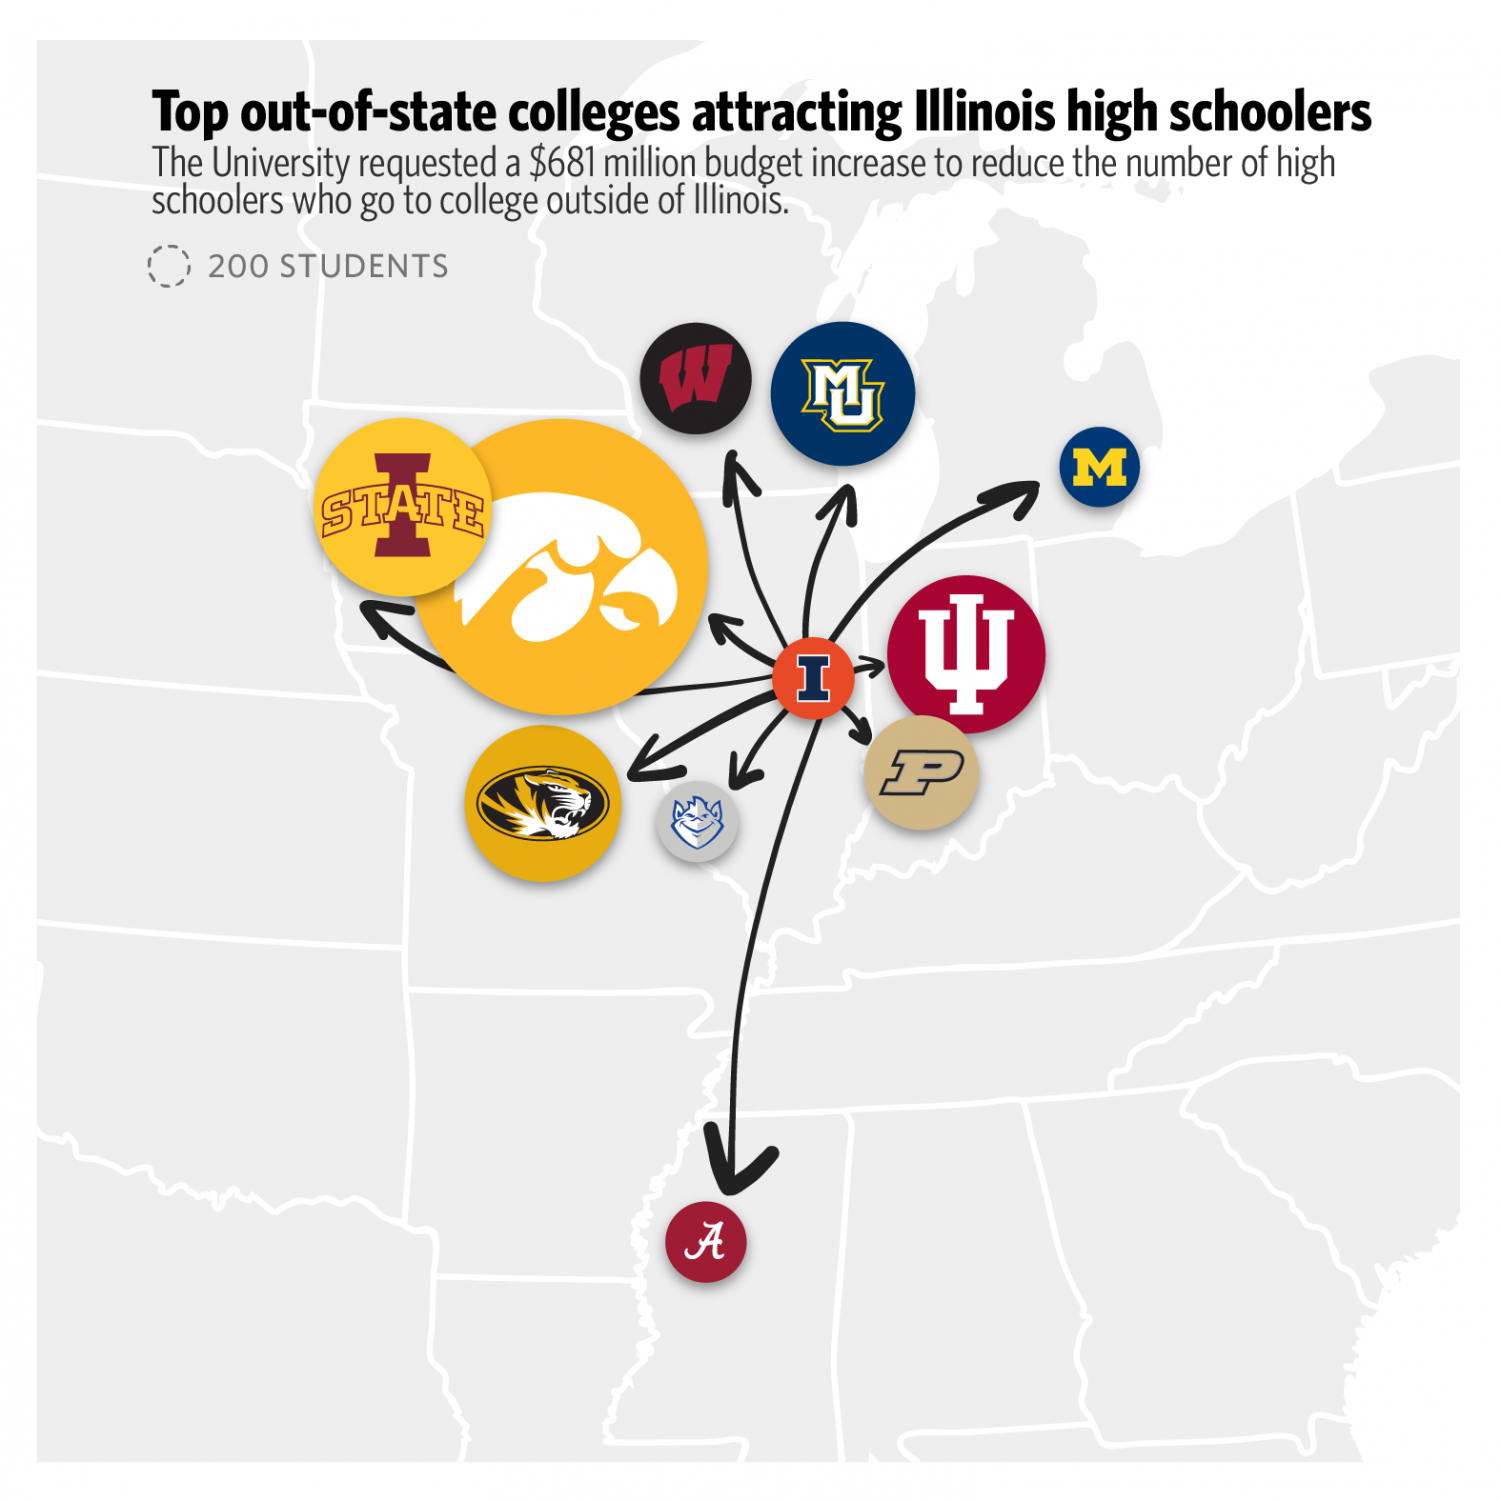 Source: Illinois Board of Higher Education